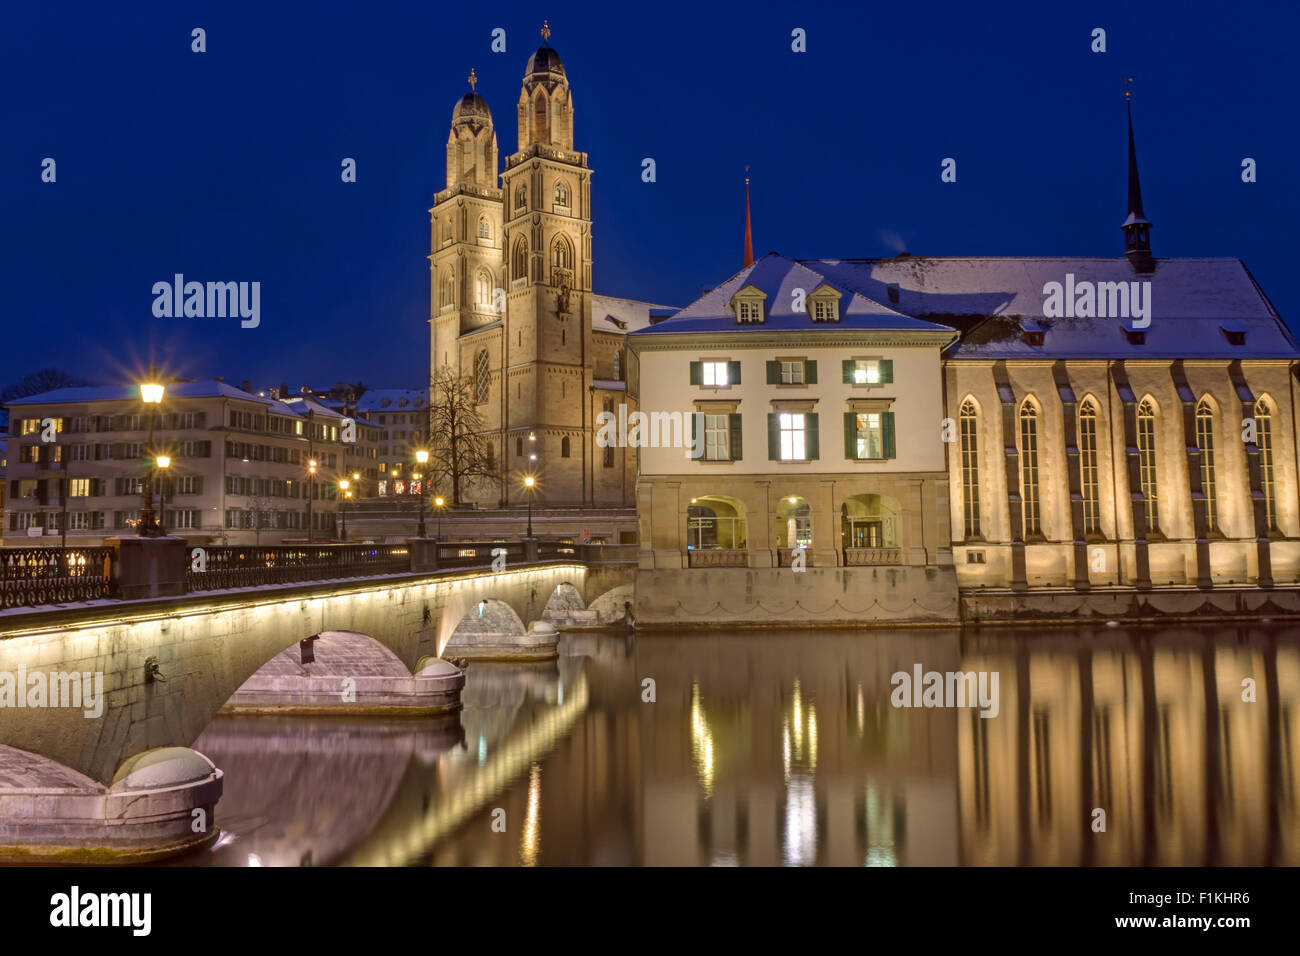 The river and the Minster in Zurich in Winter at night - Stock Image